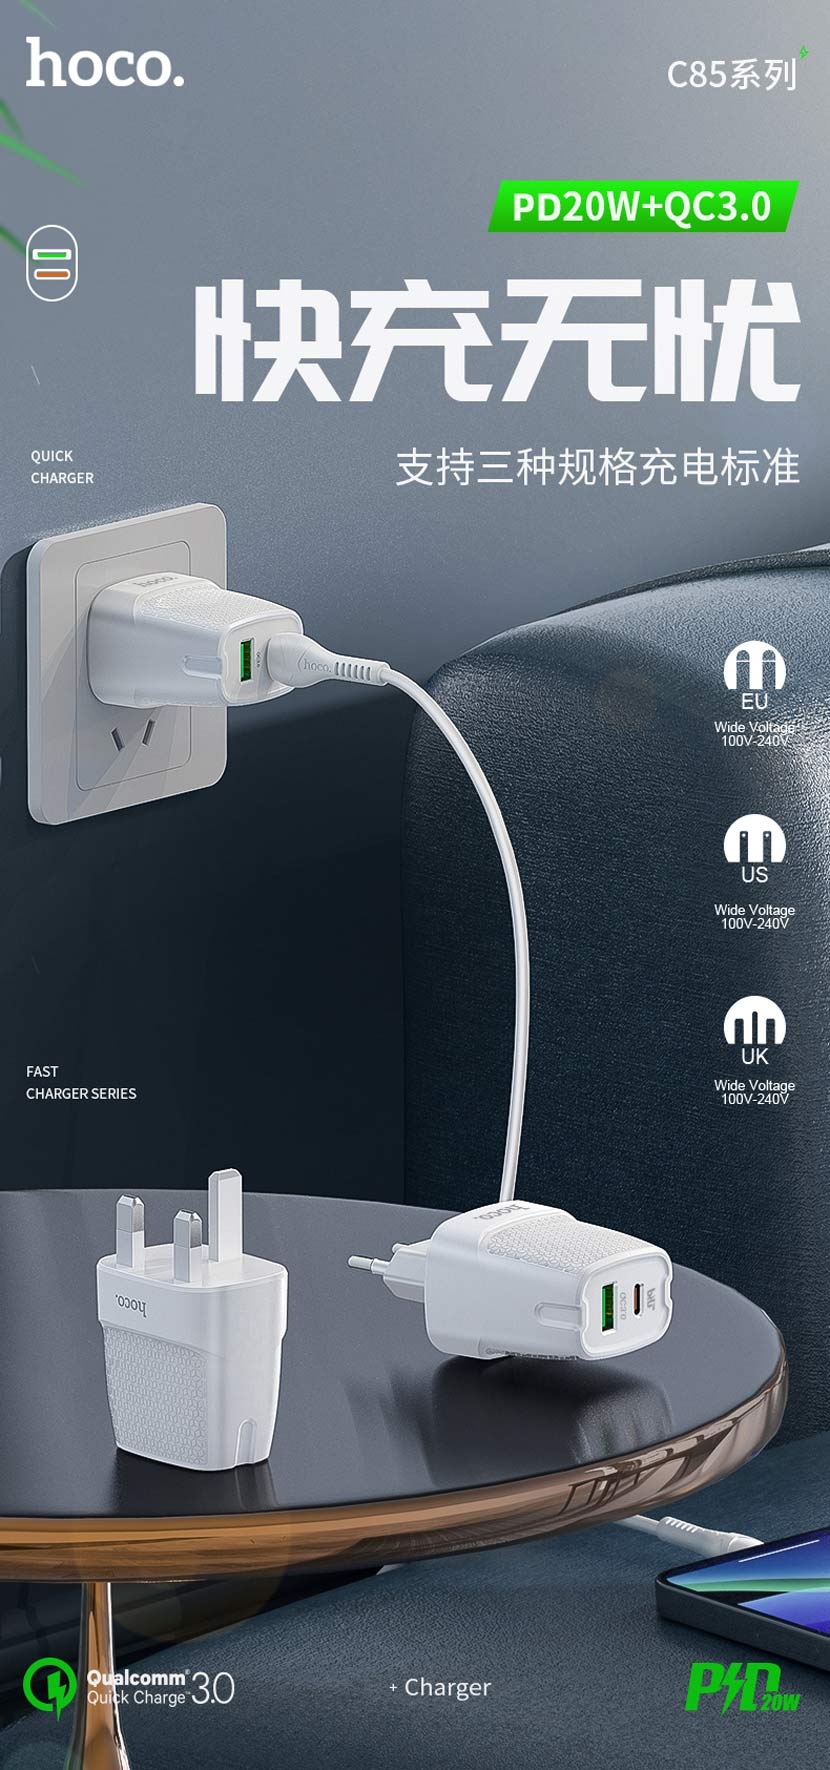 hoco news c85 bright dual port pd20w qc3 wall charger cn